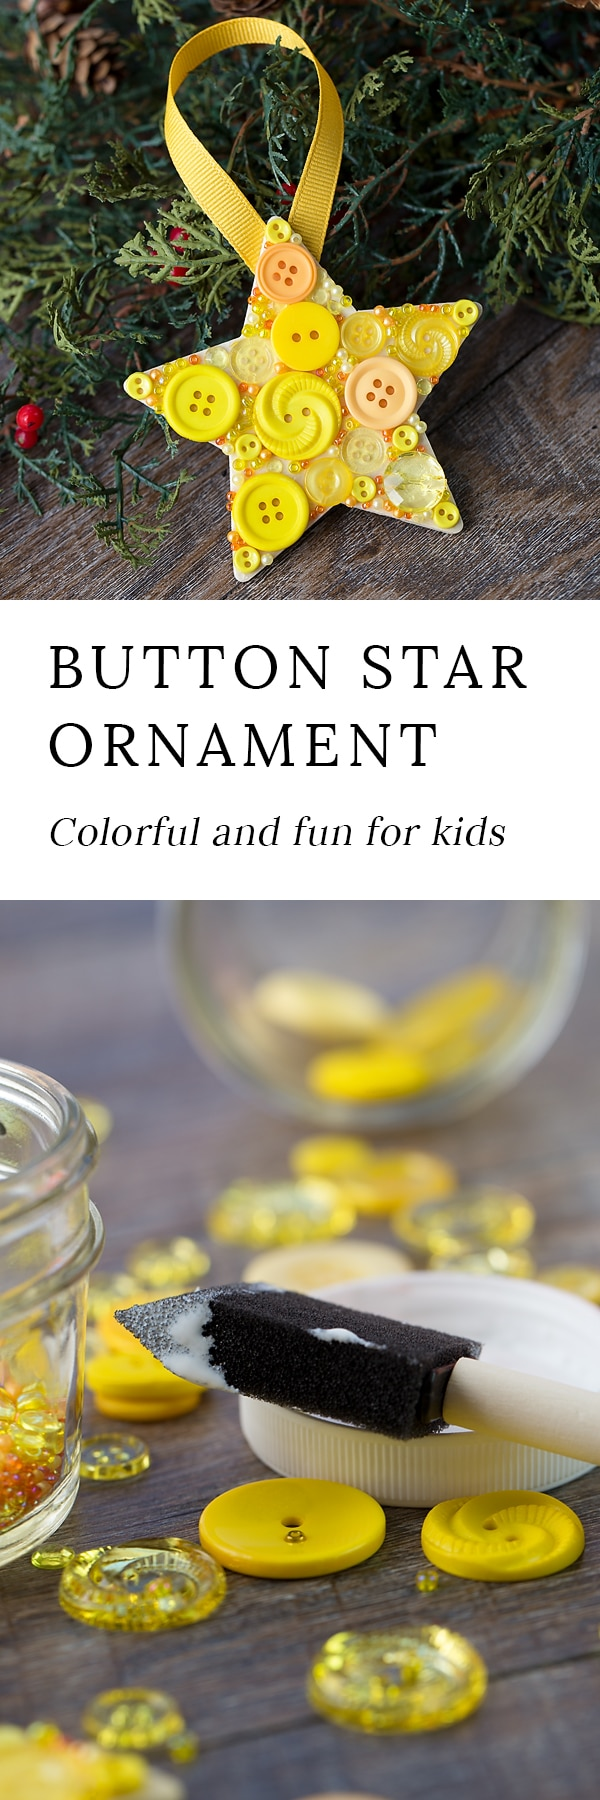 Just in time for Christmas, learn how to make a colorful button star ornament with a wooden star, yellow buttons, and glue.